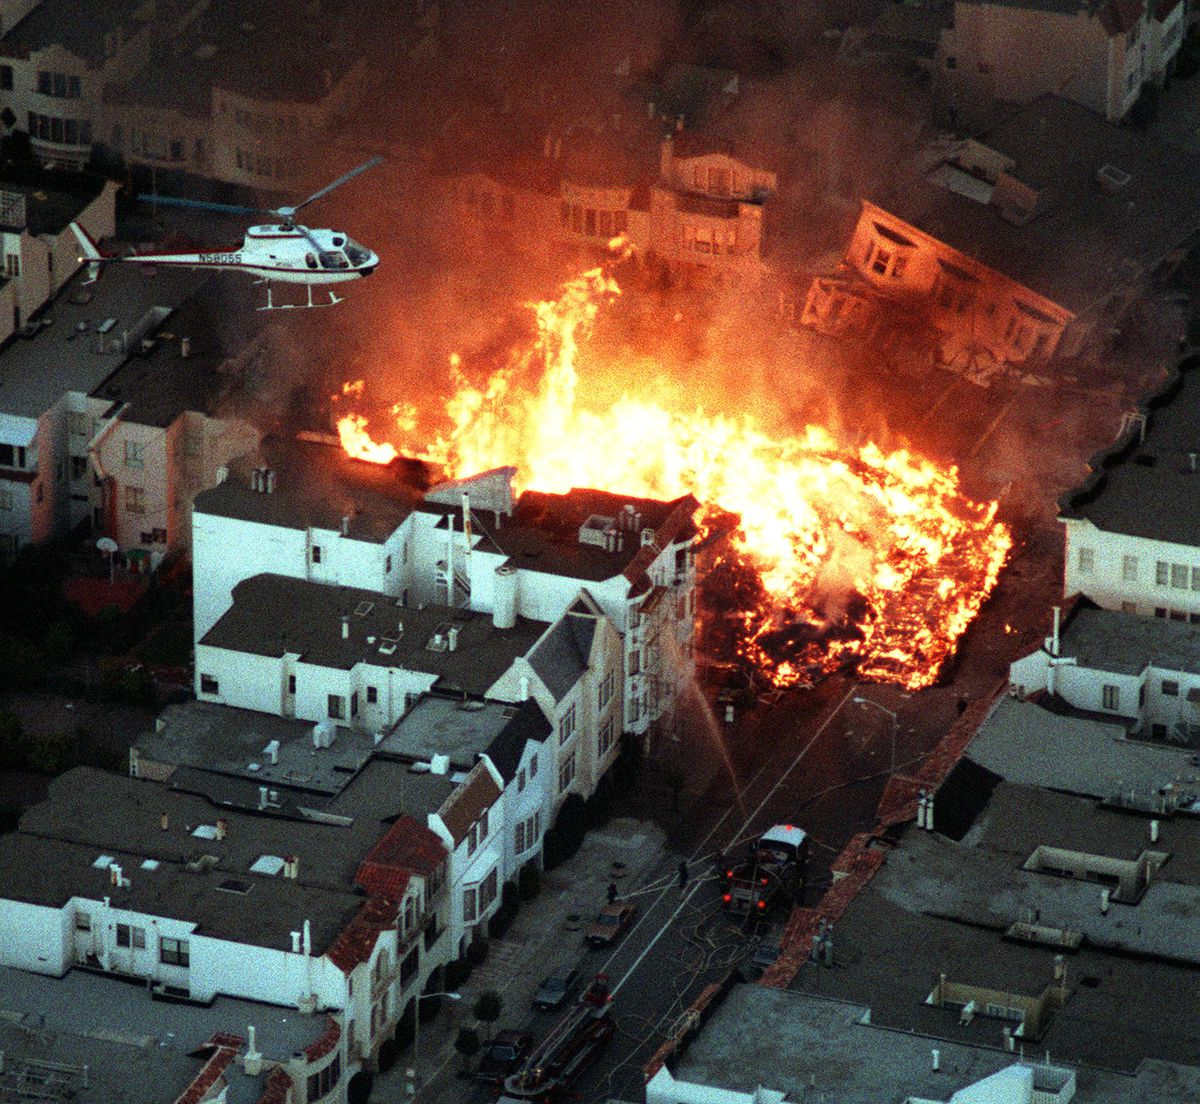 An aerial photo showing a massive fire happening in the middle of a residential neighborhood. A news helicopter hovers above.